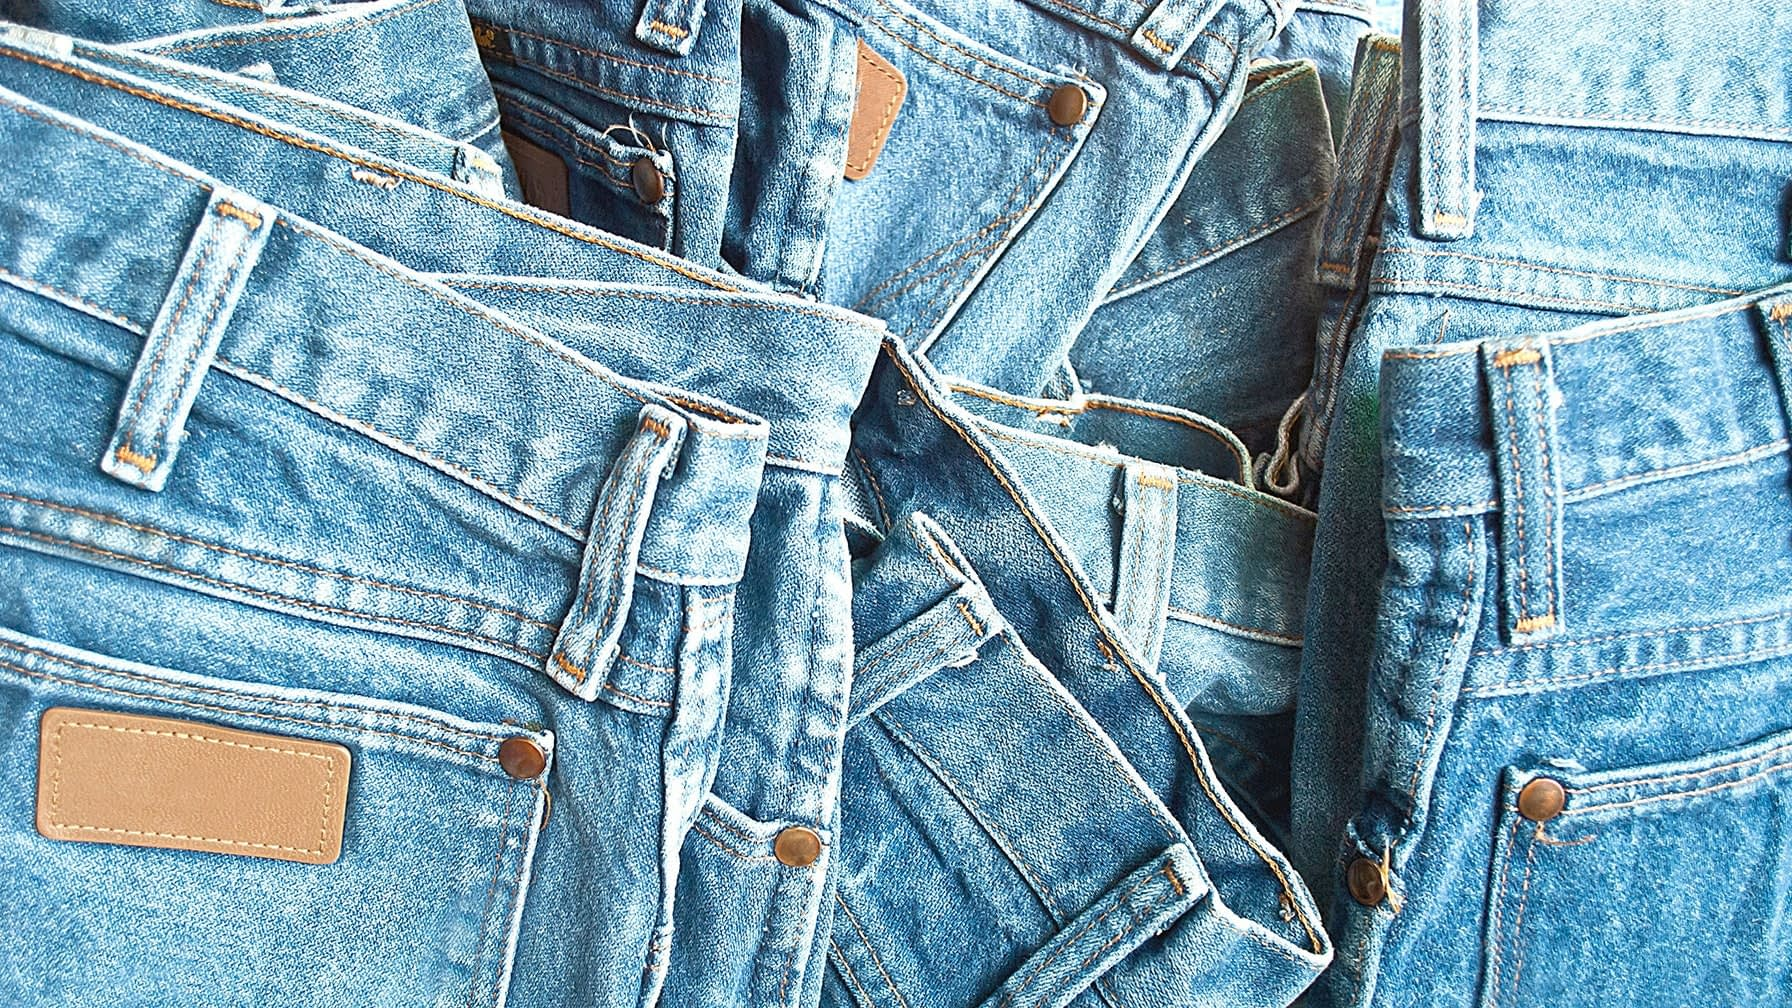 Mexican jeans exports totaled US$156 million in 2021